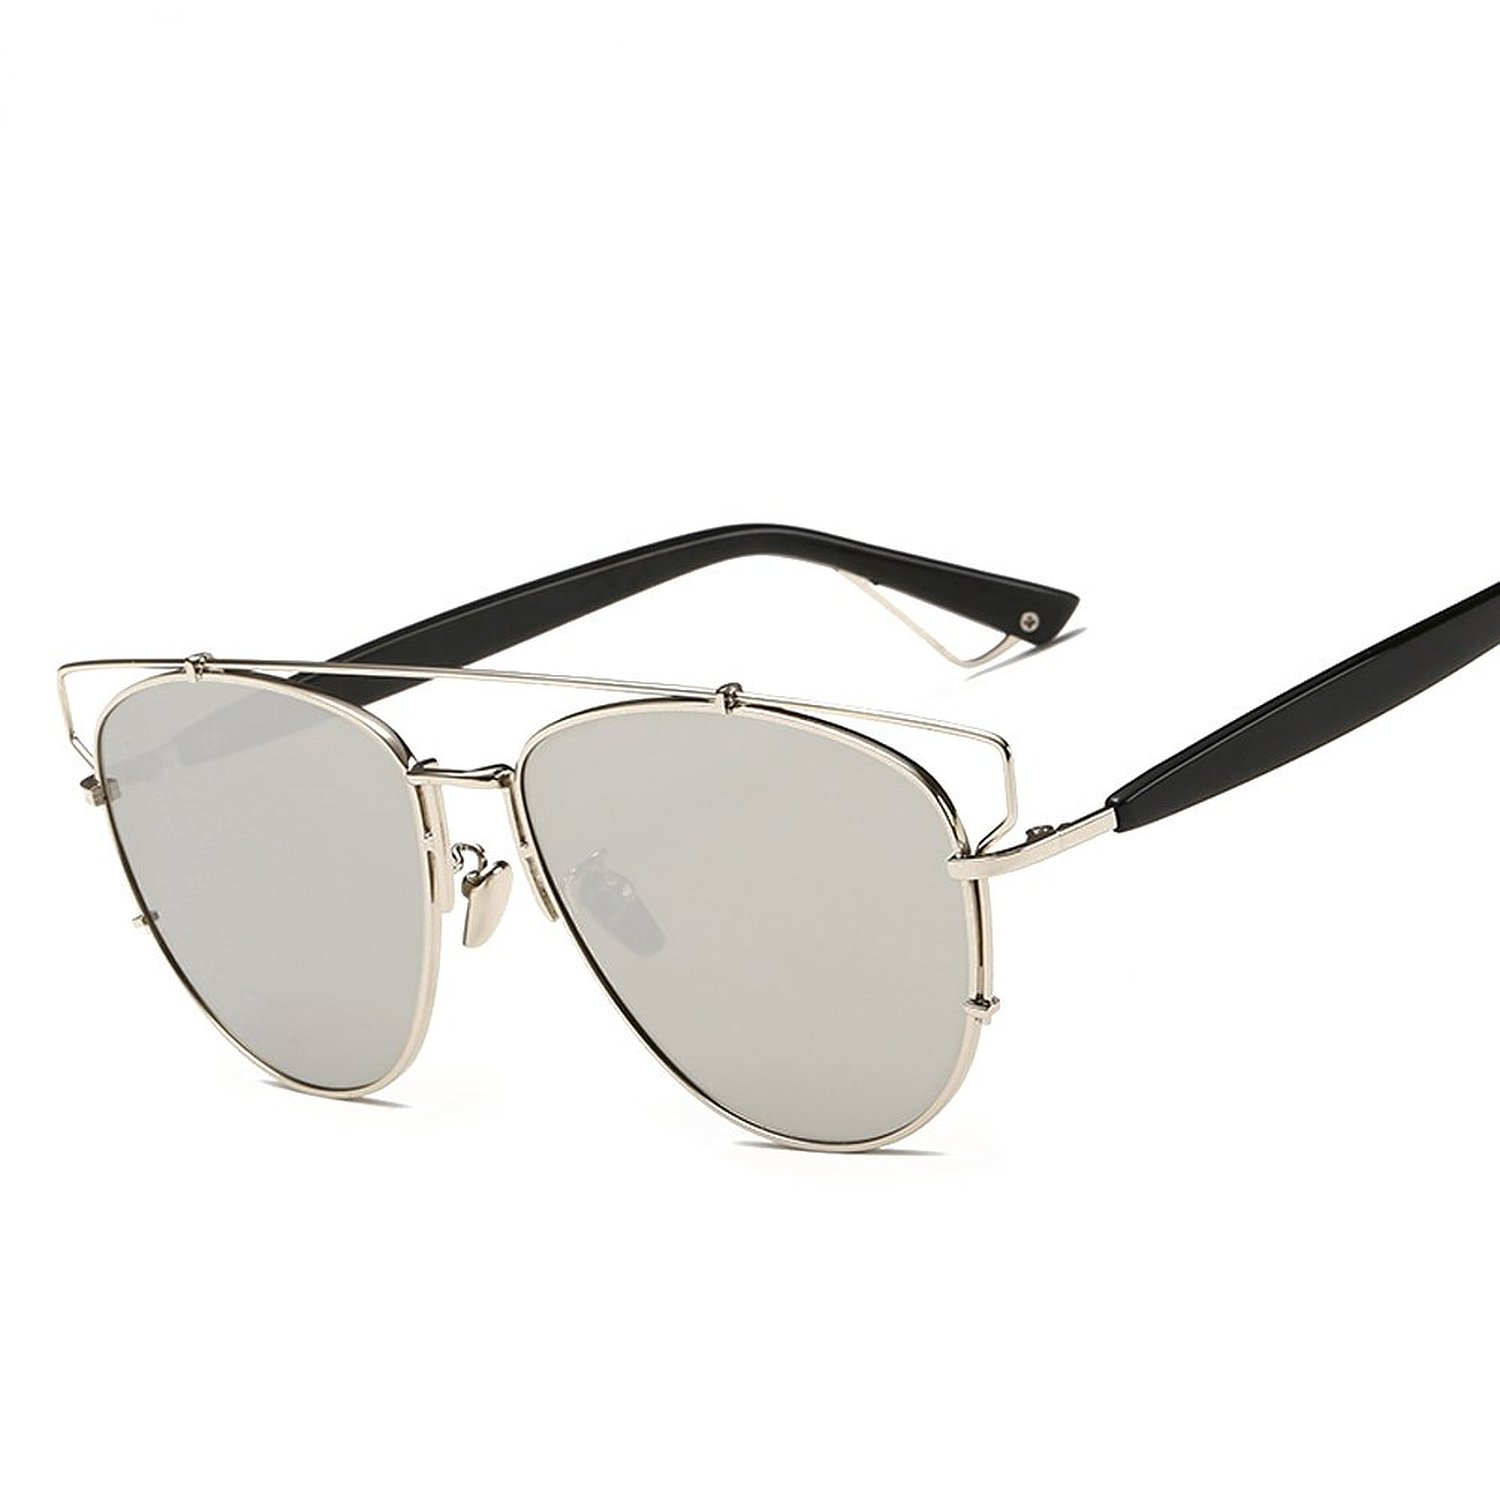 4274e5d6c7b Amazon.com  GMAT Retro Vintage Mirrored Aviator Sunglasses Metal ...